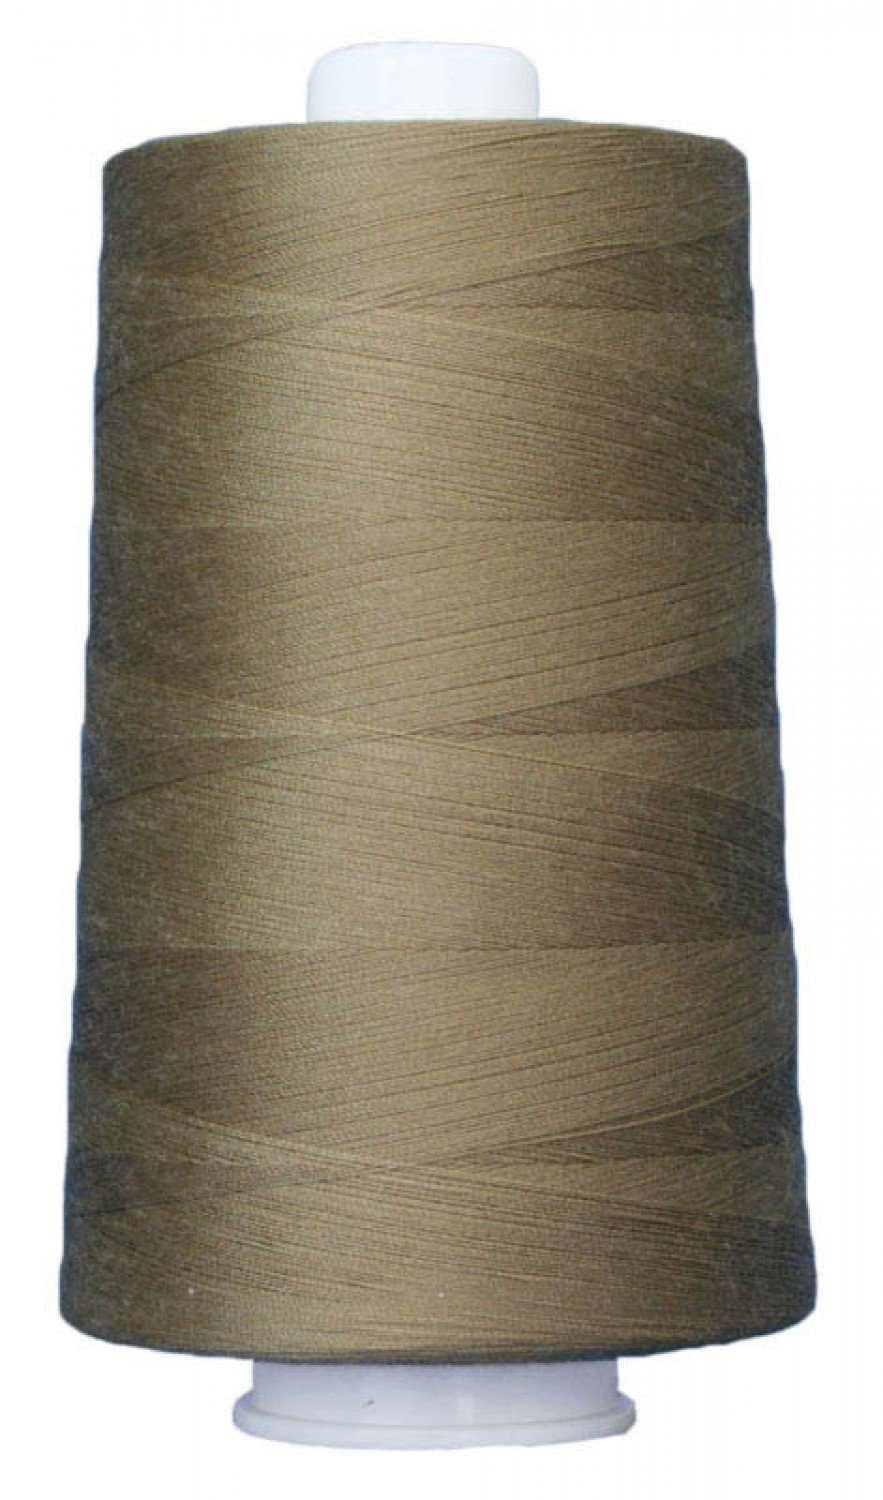 OMNI Polyester Thread 40 wt 6000 yds 3015 Tapestry Taupe by Superior